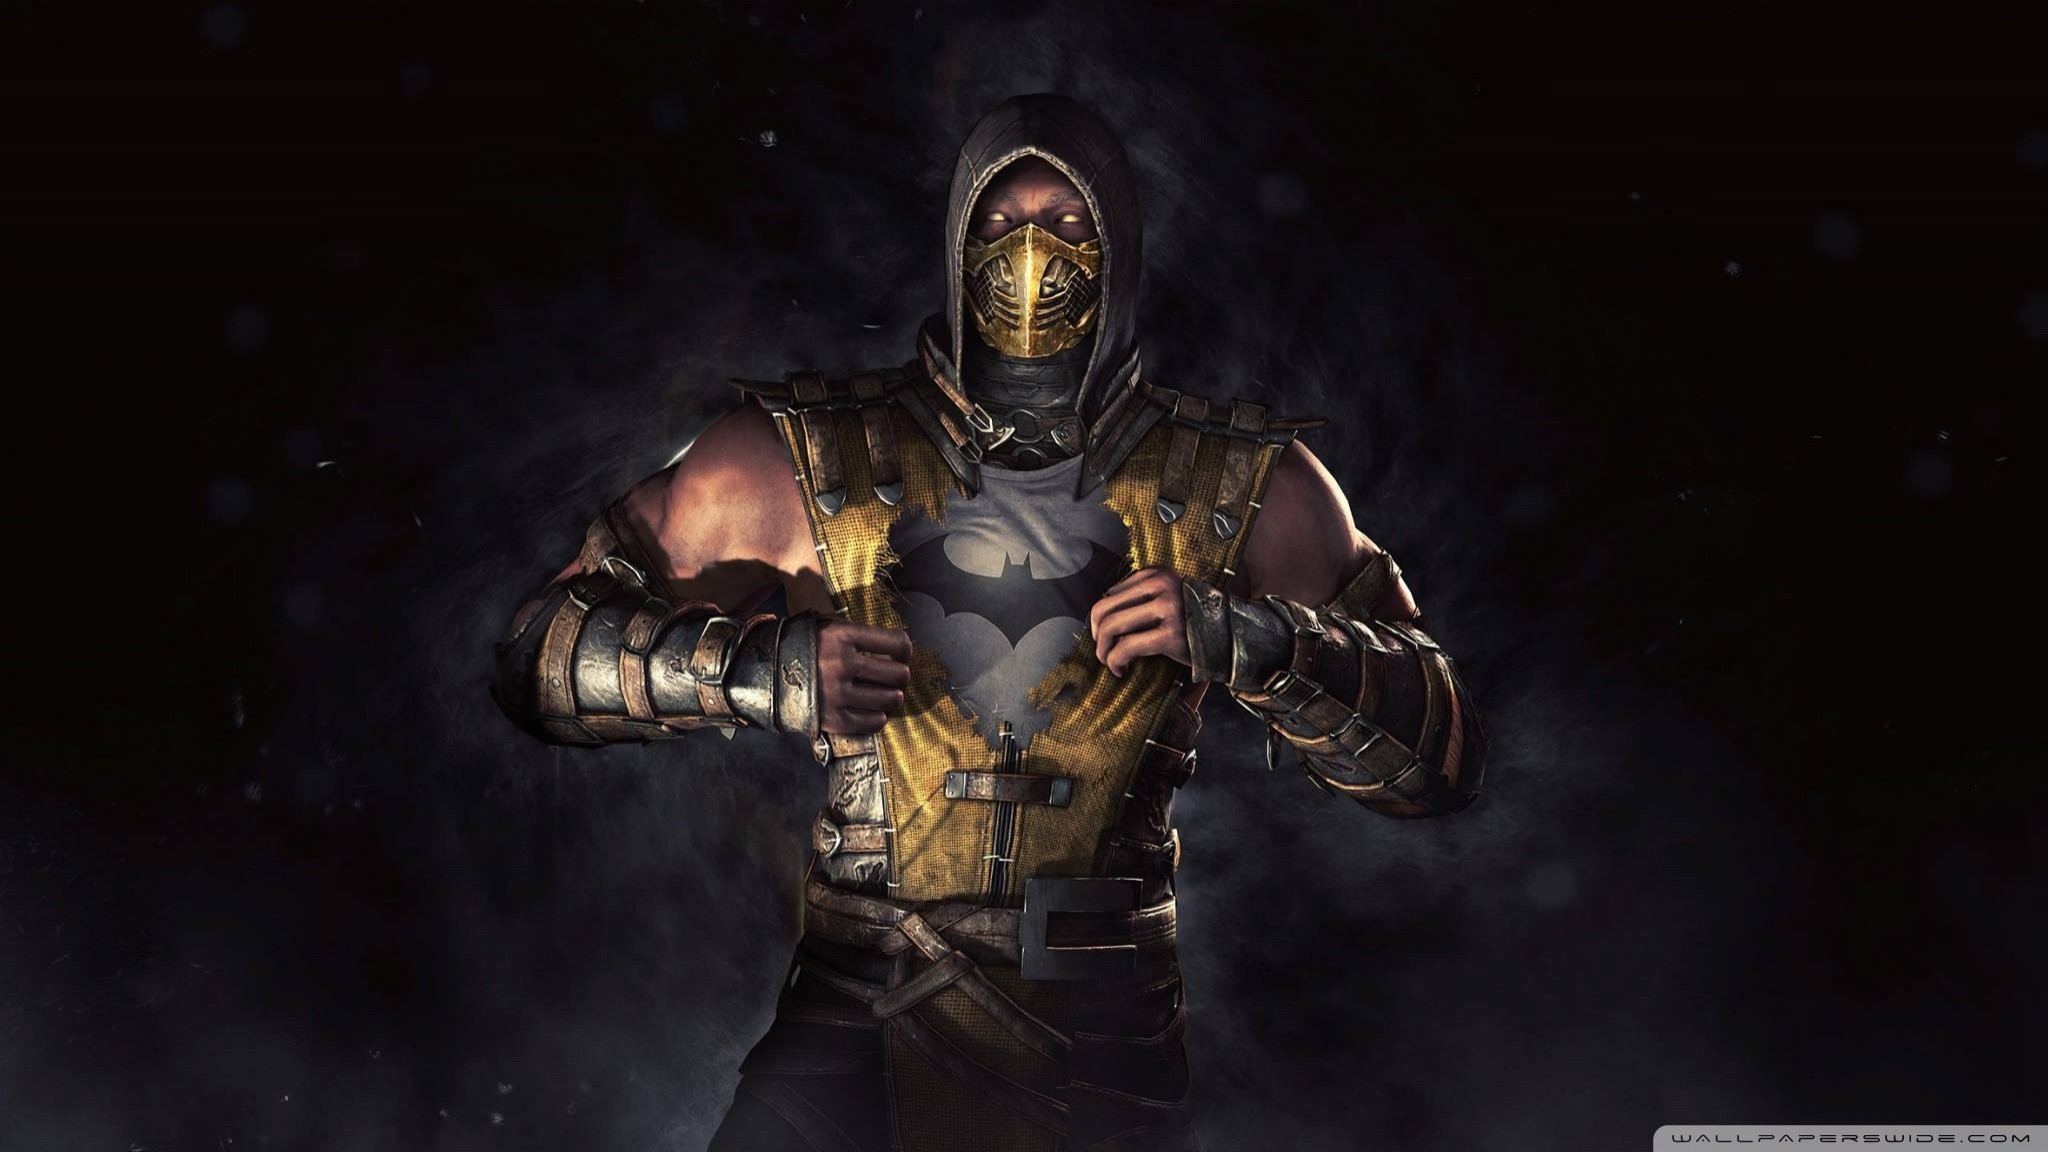 Mortal kombat scorpion wallpapers wallpapertag - Mortal kombat scorpion wallpaper ...